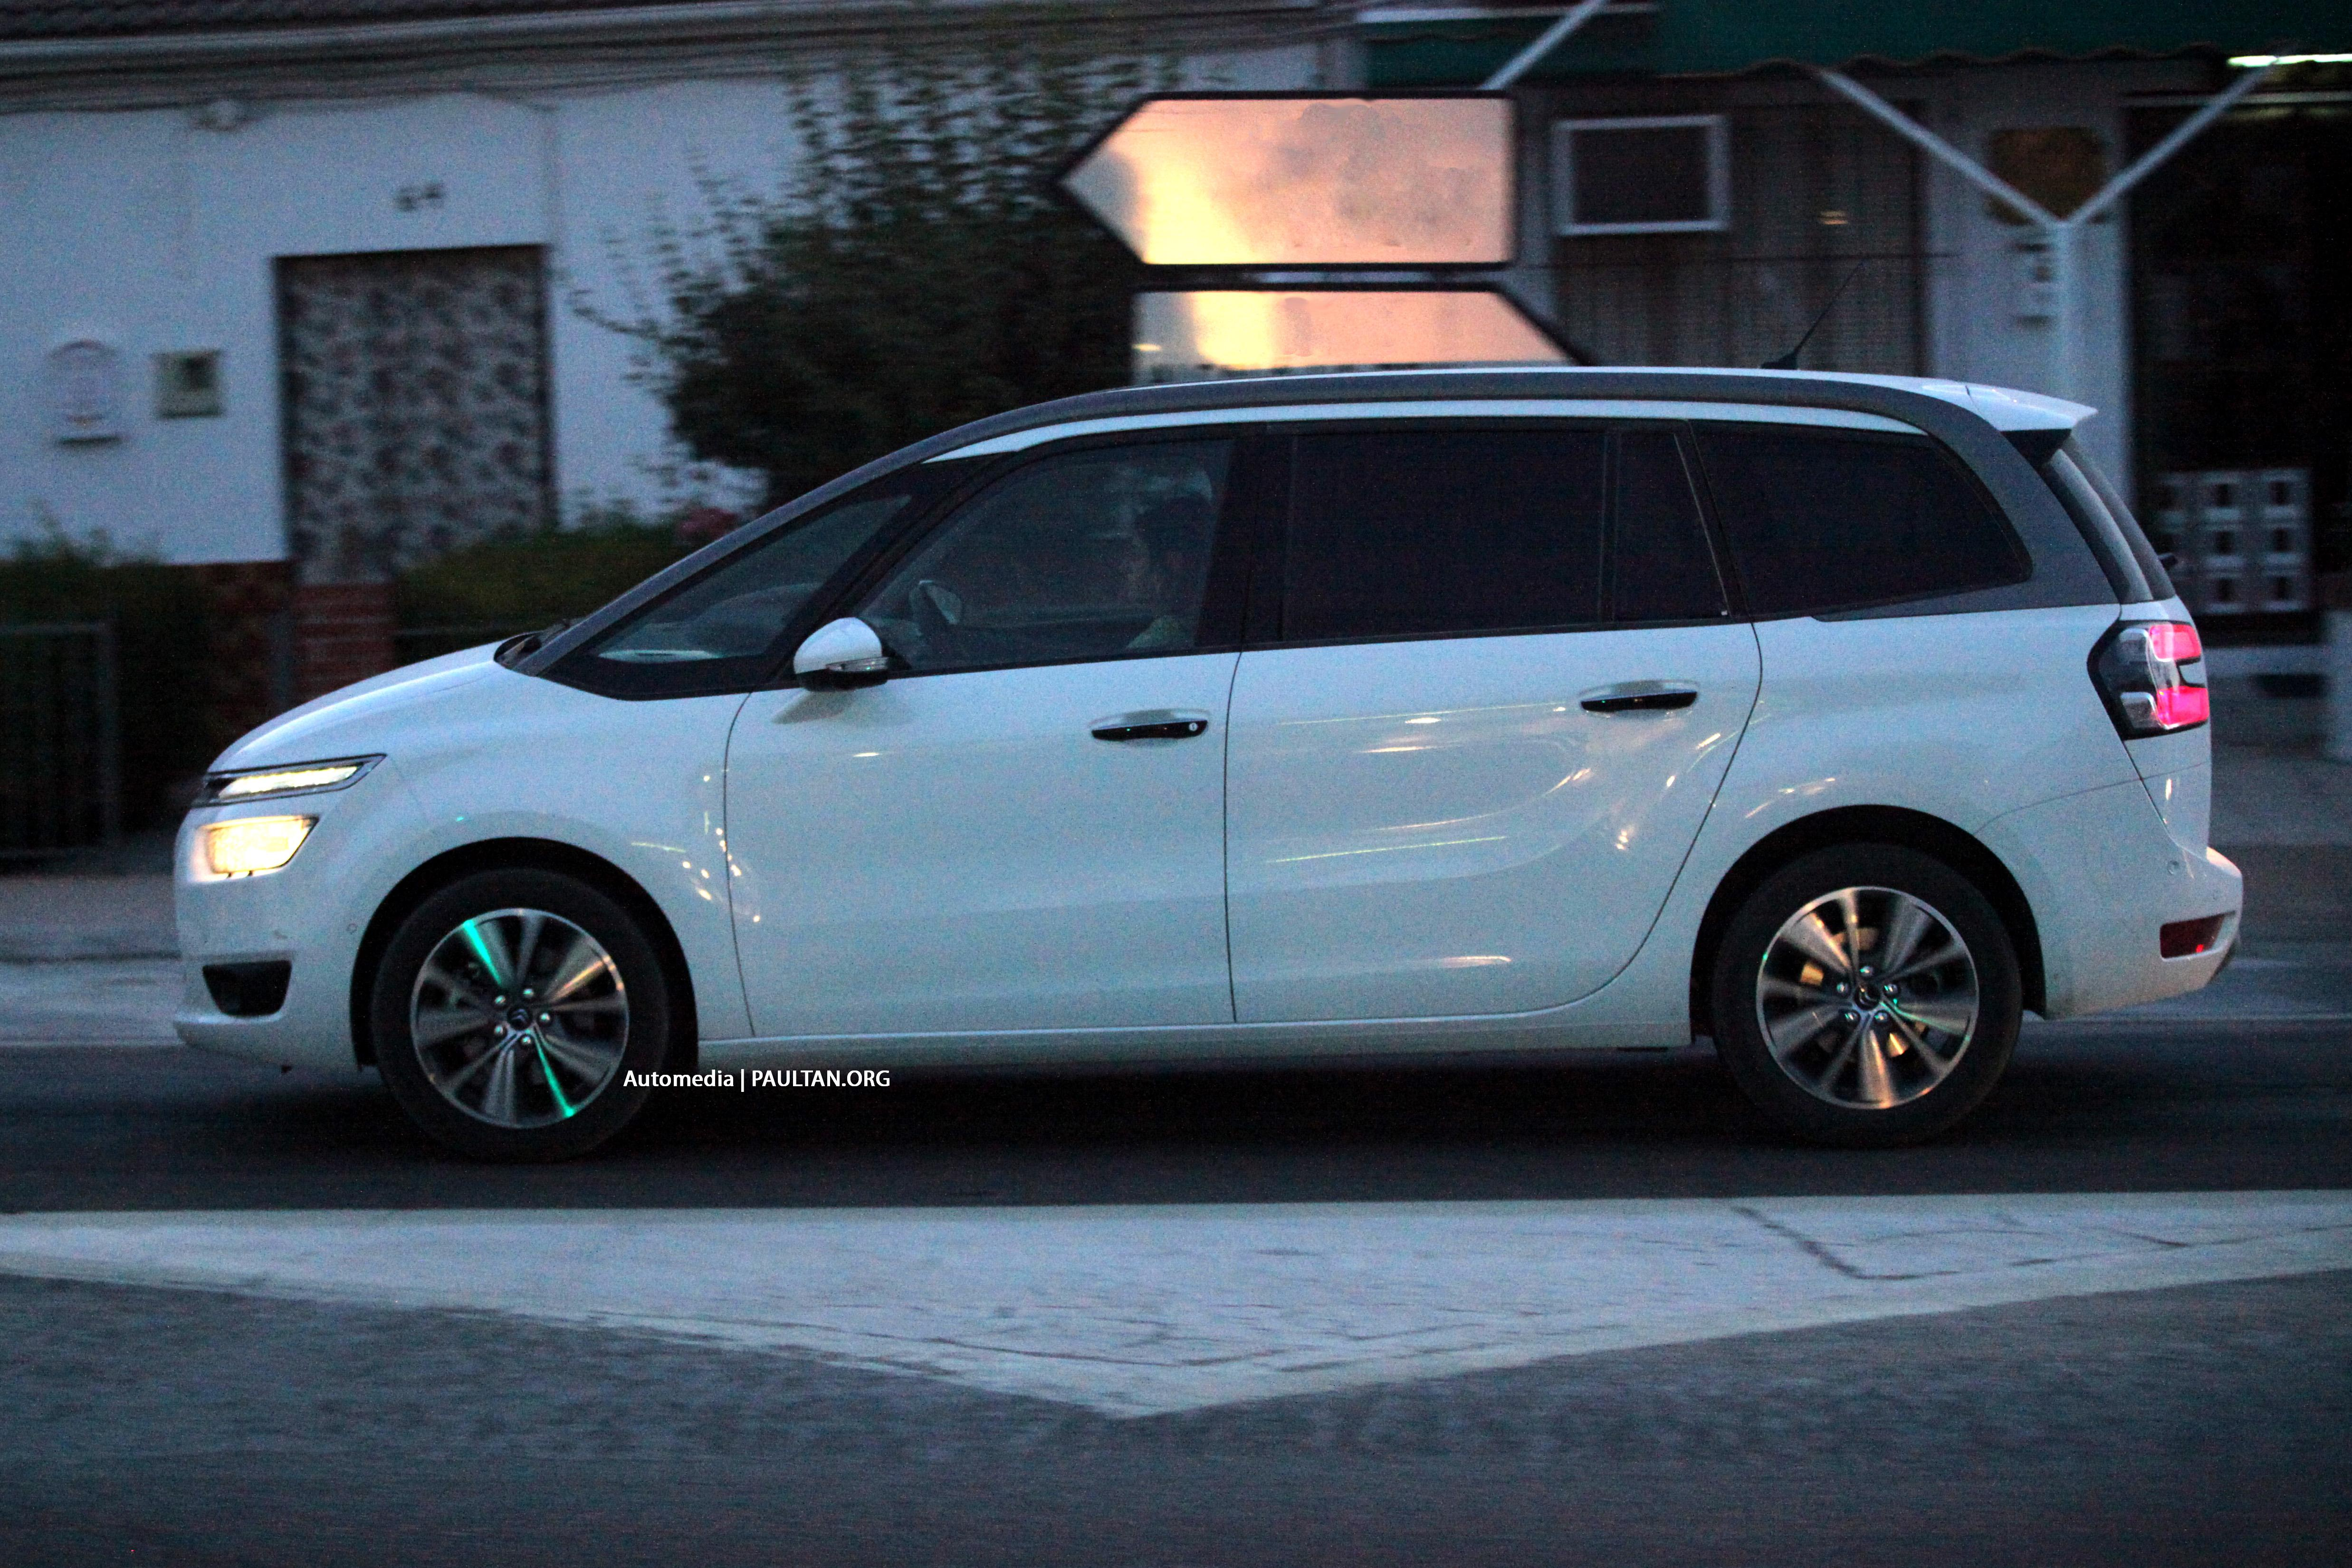 Spyshots 2014 citroen grand c4 picasso in europe likely engine choices include 16 litre hdi 90 and 110 20 litre hdi 150 16 litre vti 120 14 vti 95 and 16 thp 155 reports say there should be a vanachro Image collections